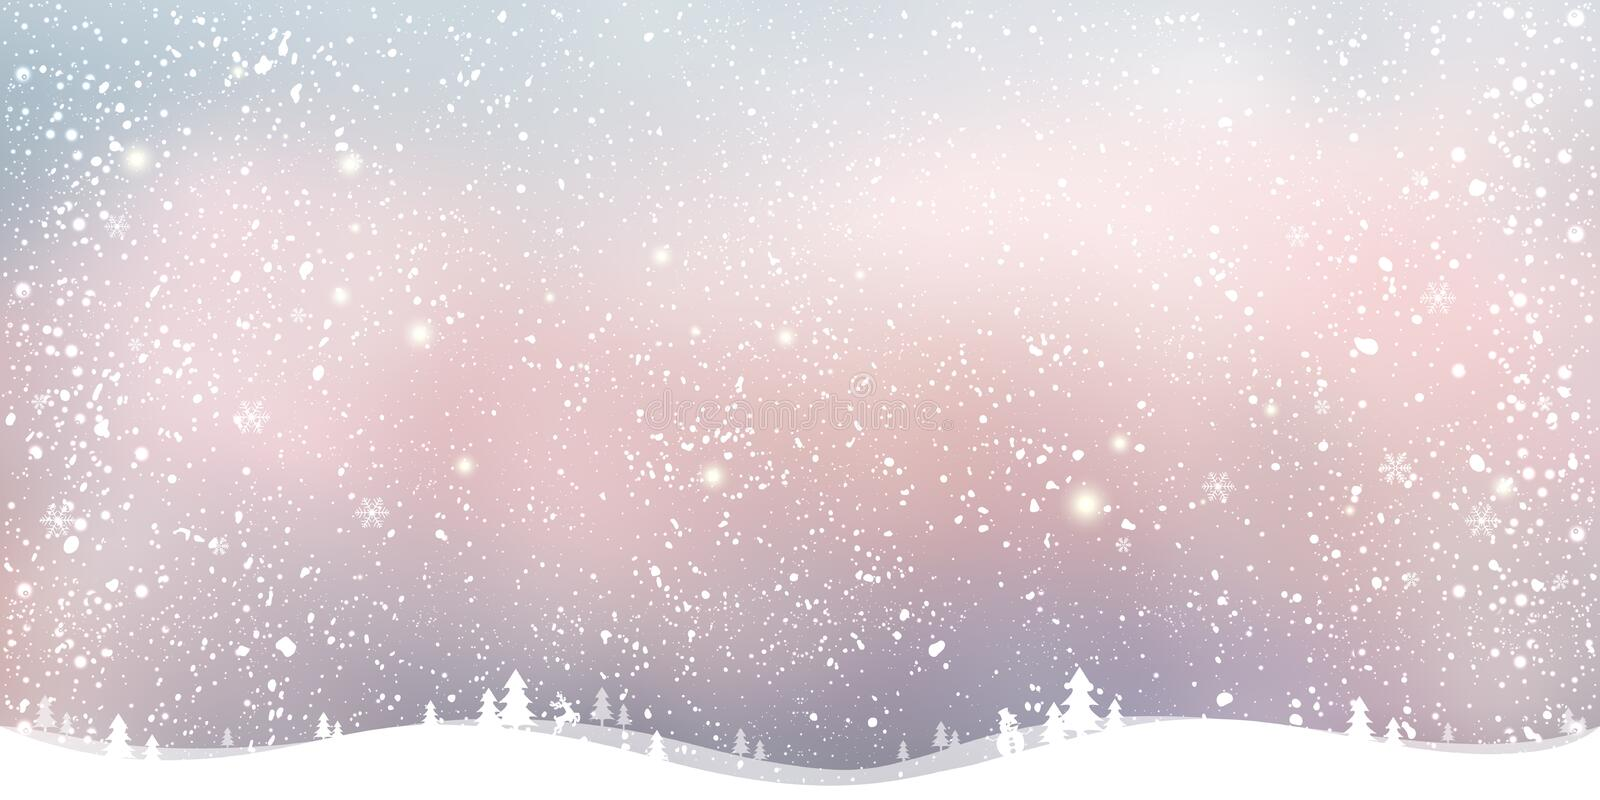 Winter Christmas background with landscape, snowflakes, light, stars. Xmas and New Year card. Vector Illustration royalty free illustration